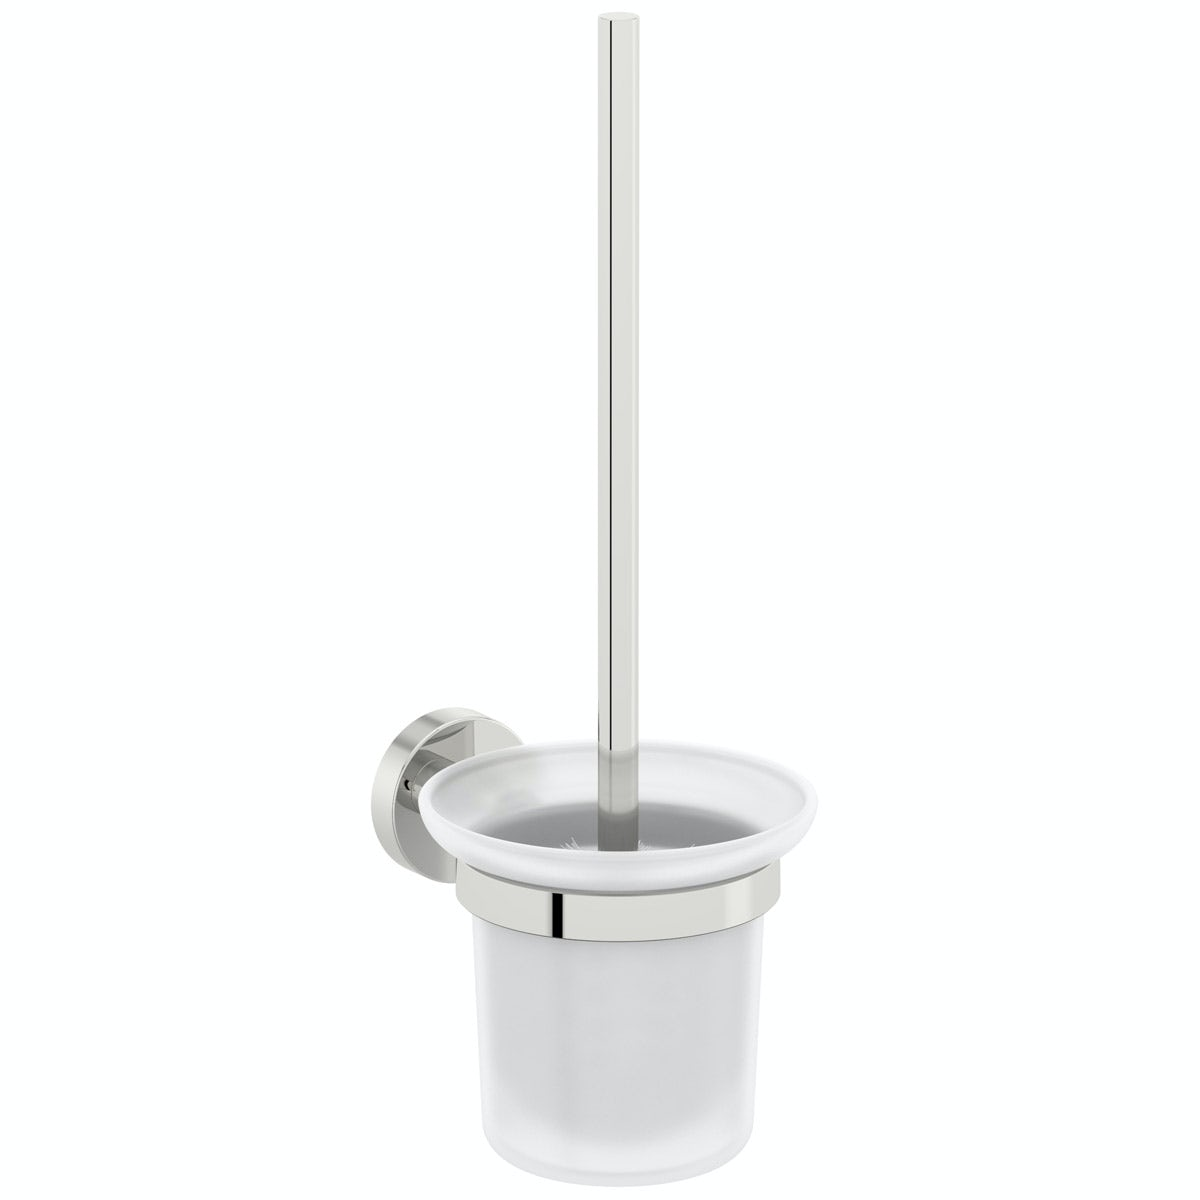 Lunar Toilet Brush and Holder